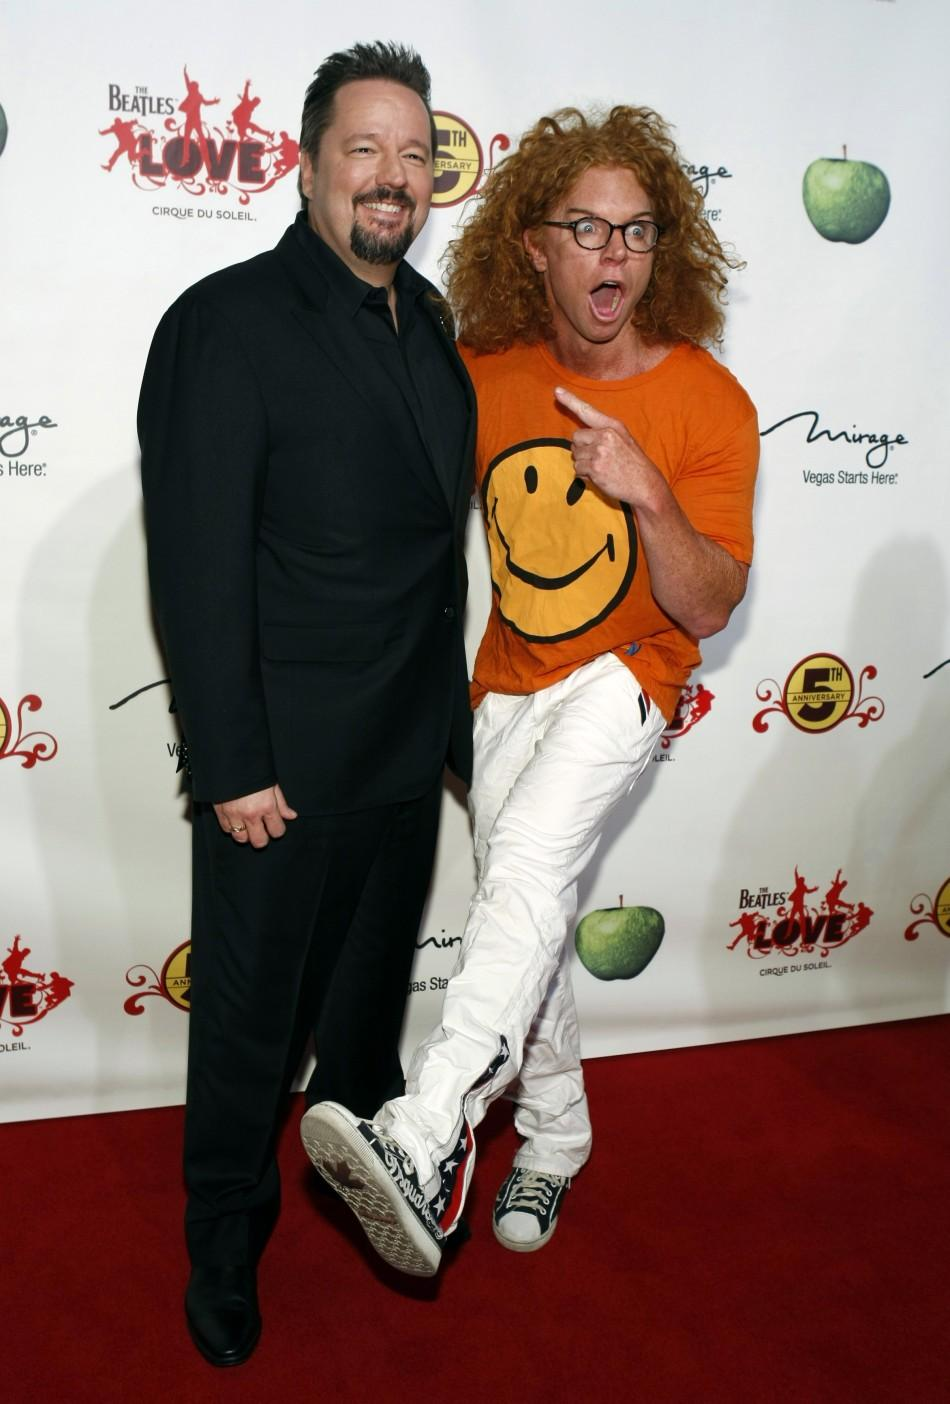 """Ventriloquist Terry Fator and comedian Carrot Top (R) arrive for the fifth anniversary celebration of """"The Beatles LOVE by Cirque du Soleil"""" show at the Mirage Hotel and Casino in Las Vegas, Nevada June 8, 2011."""